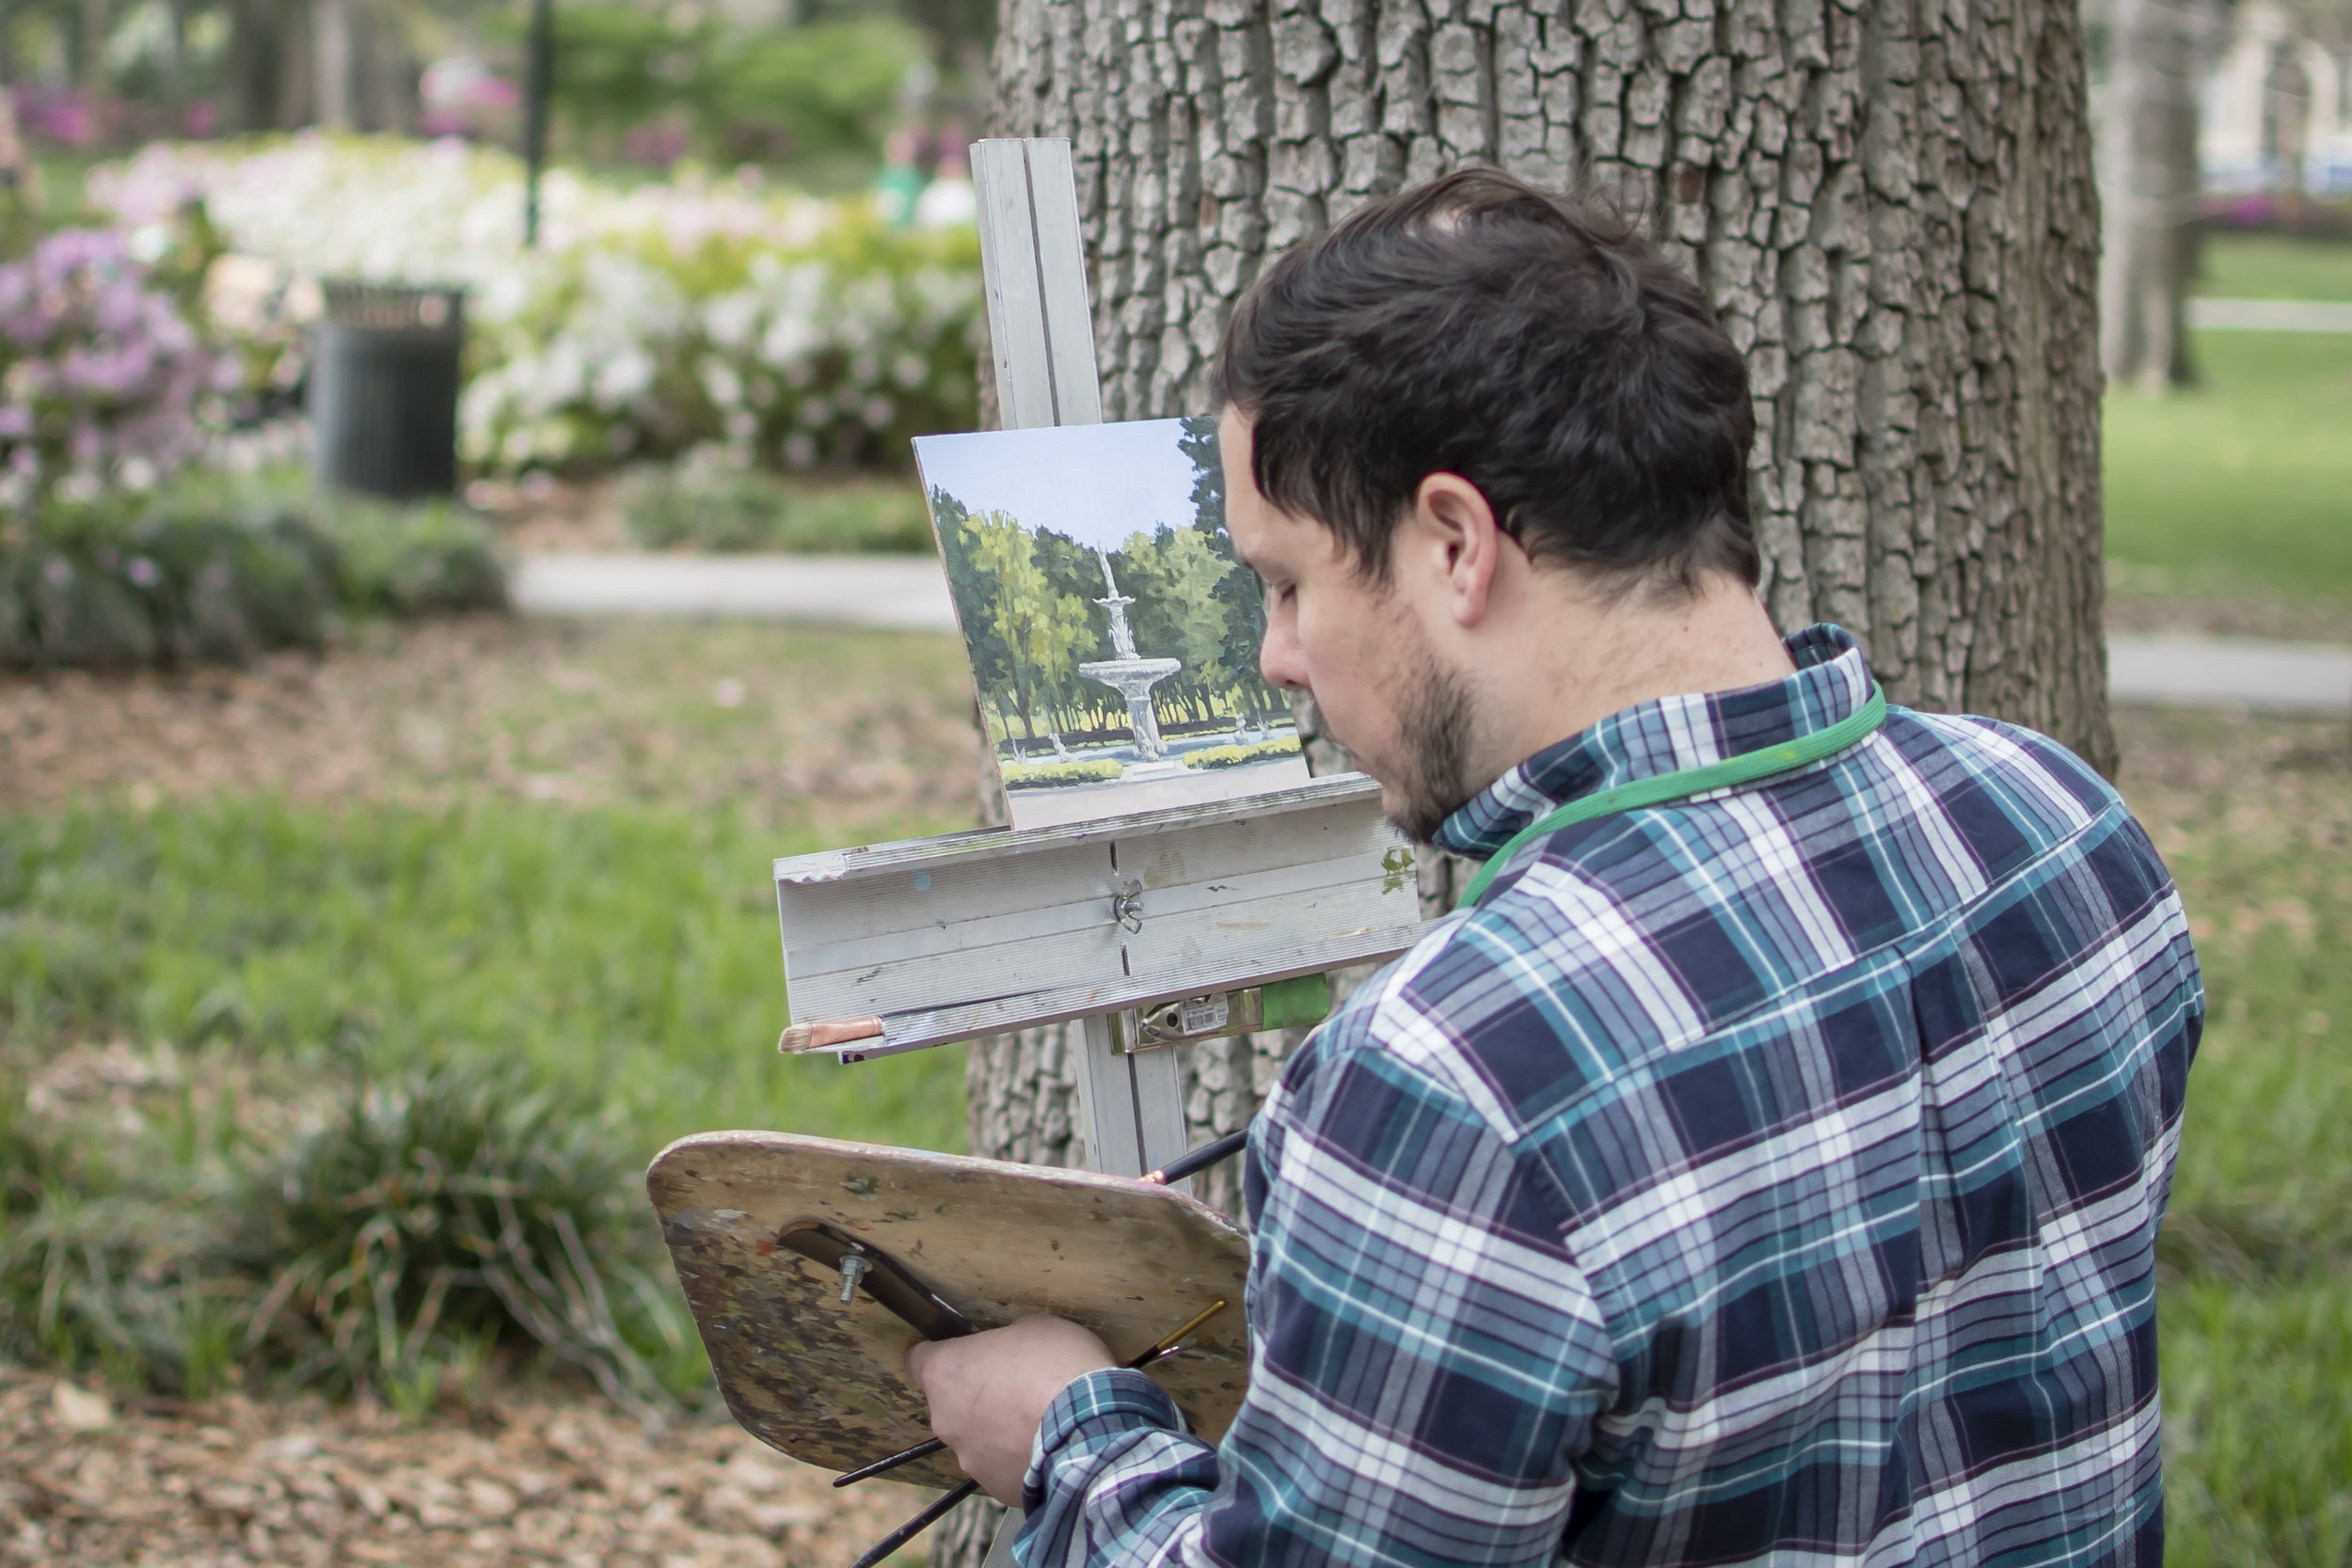 A local artist was painting the fountain located in Forsyth Park.